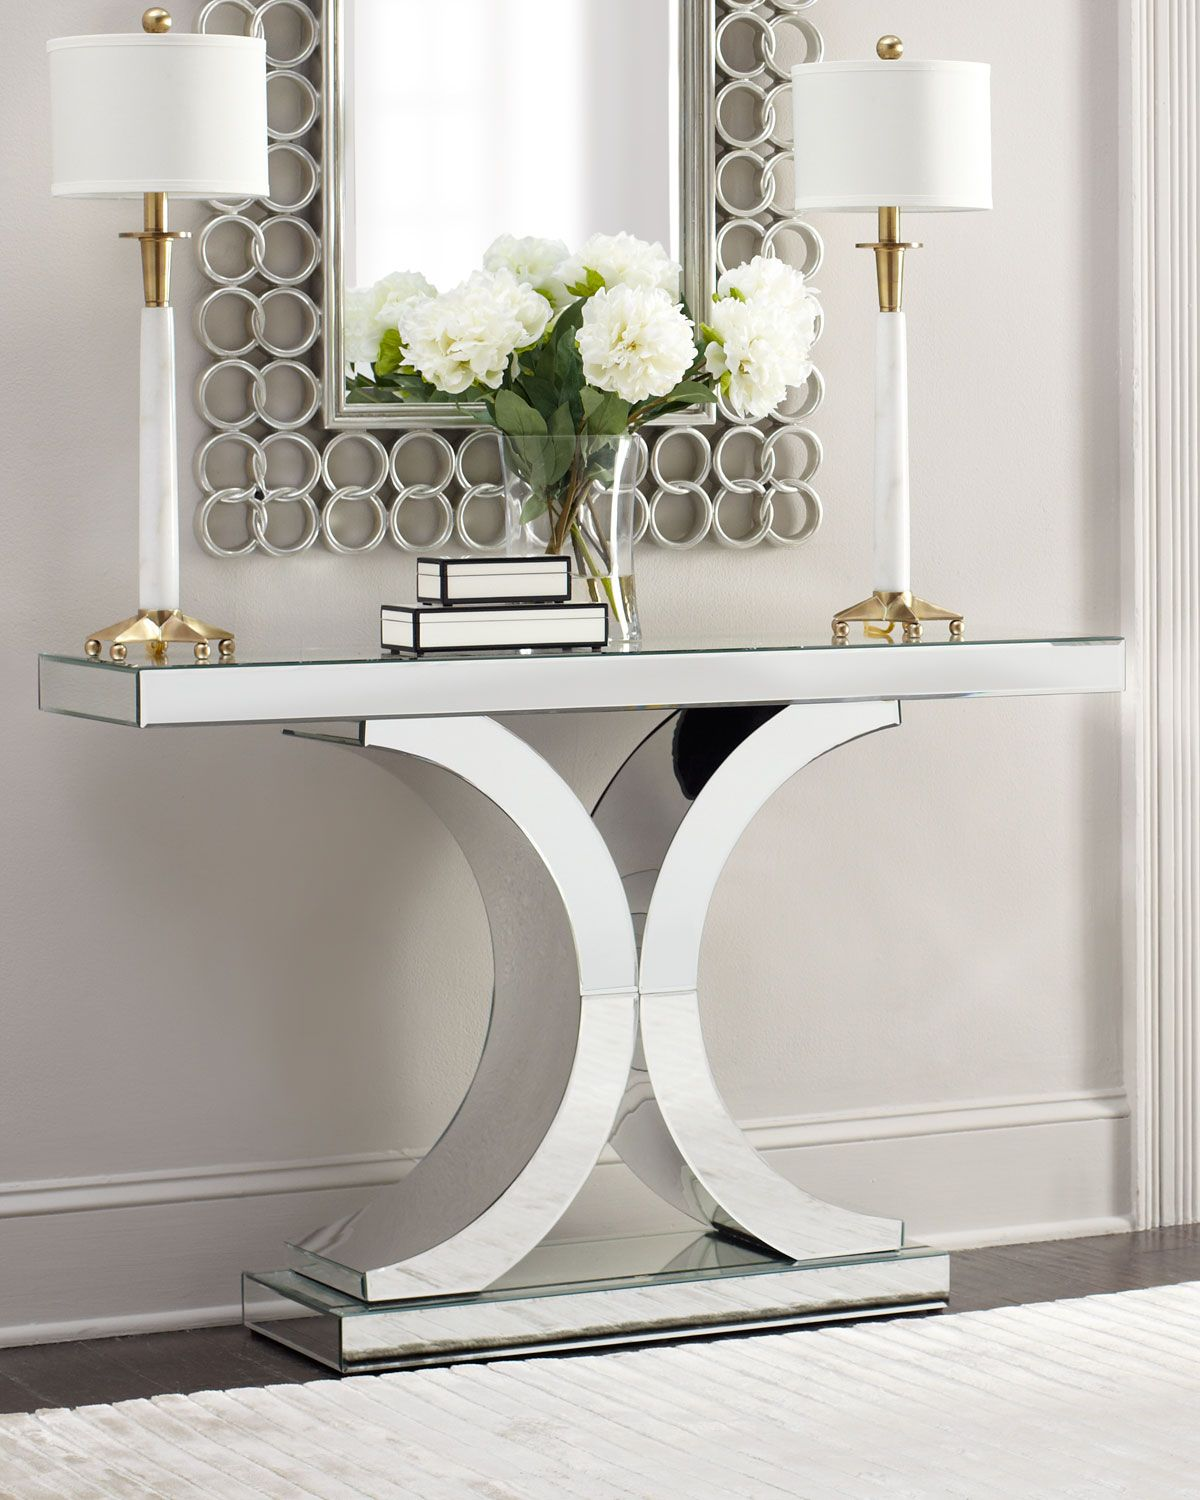 Splendora Mirrored Console Hall Decor Console Table Decorating Home Decor